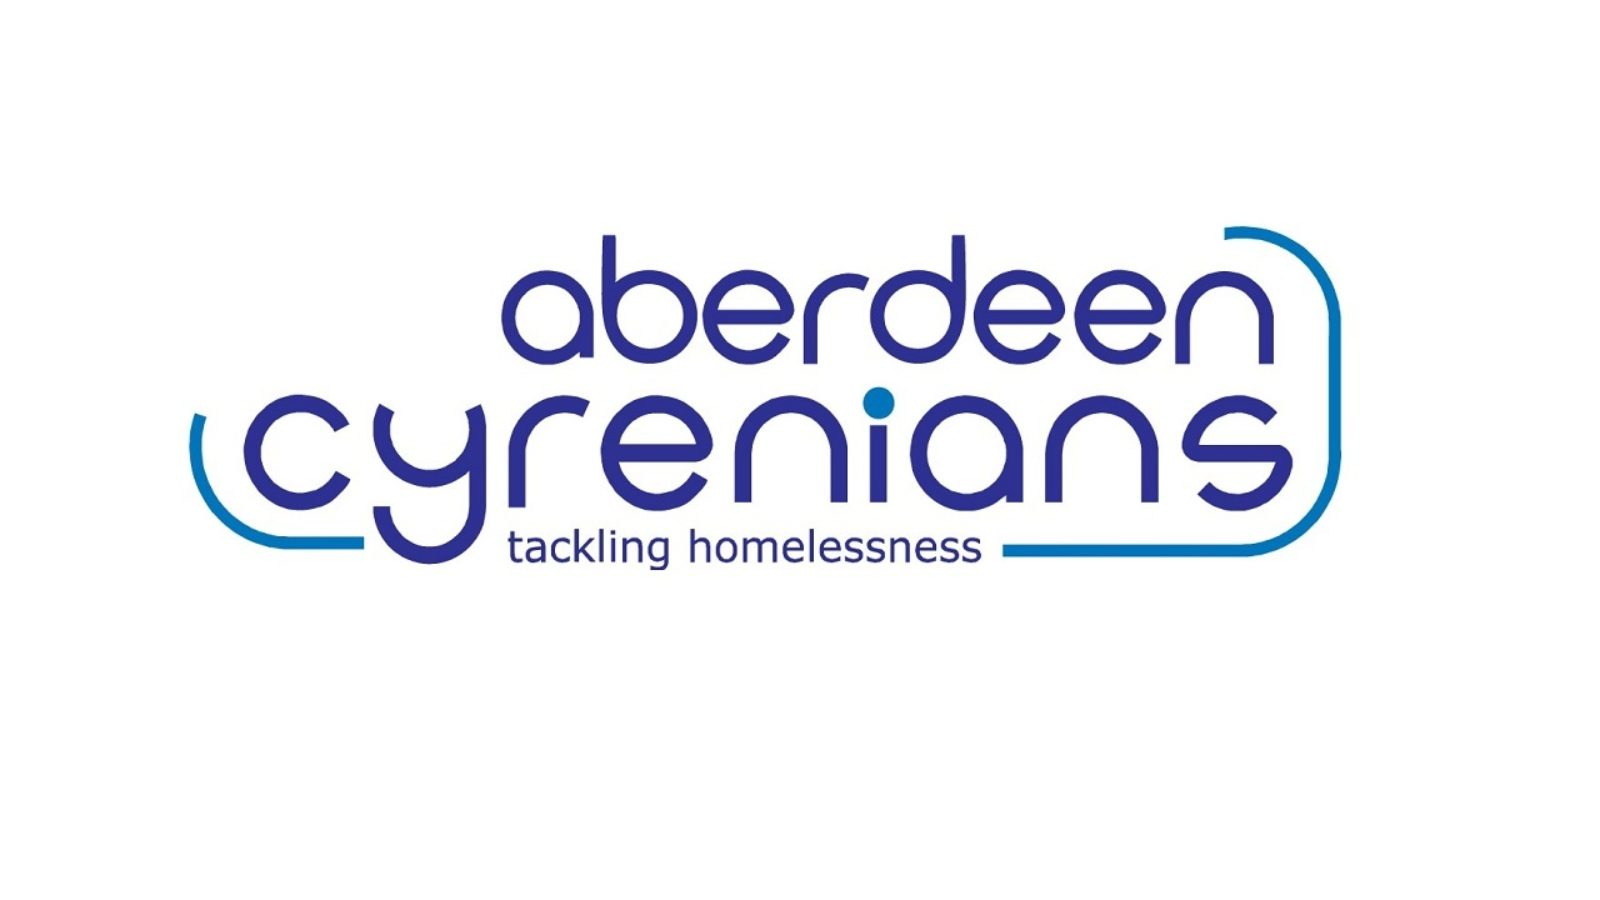 """Deeside Thistle Cycling Club raises over £2,000 for Aberdeen Cyrenians in lockdown """"virtual"""" cycling race"""